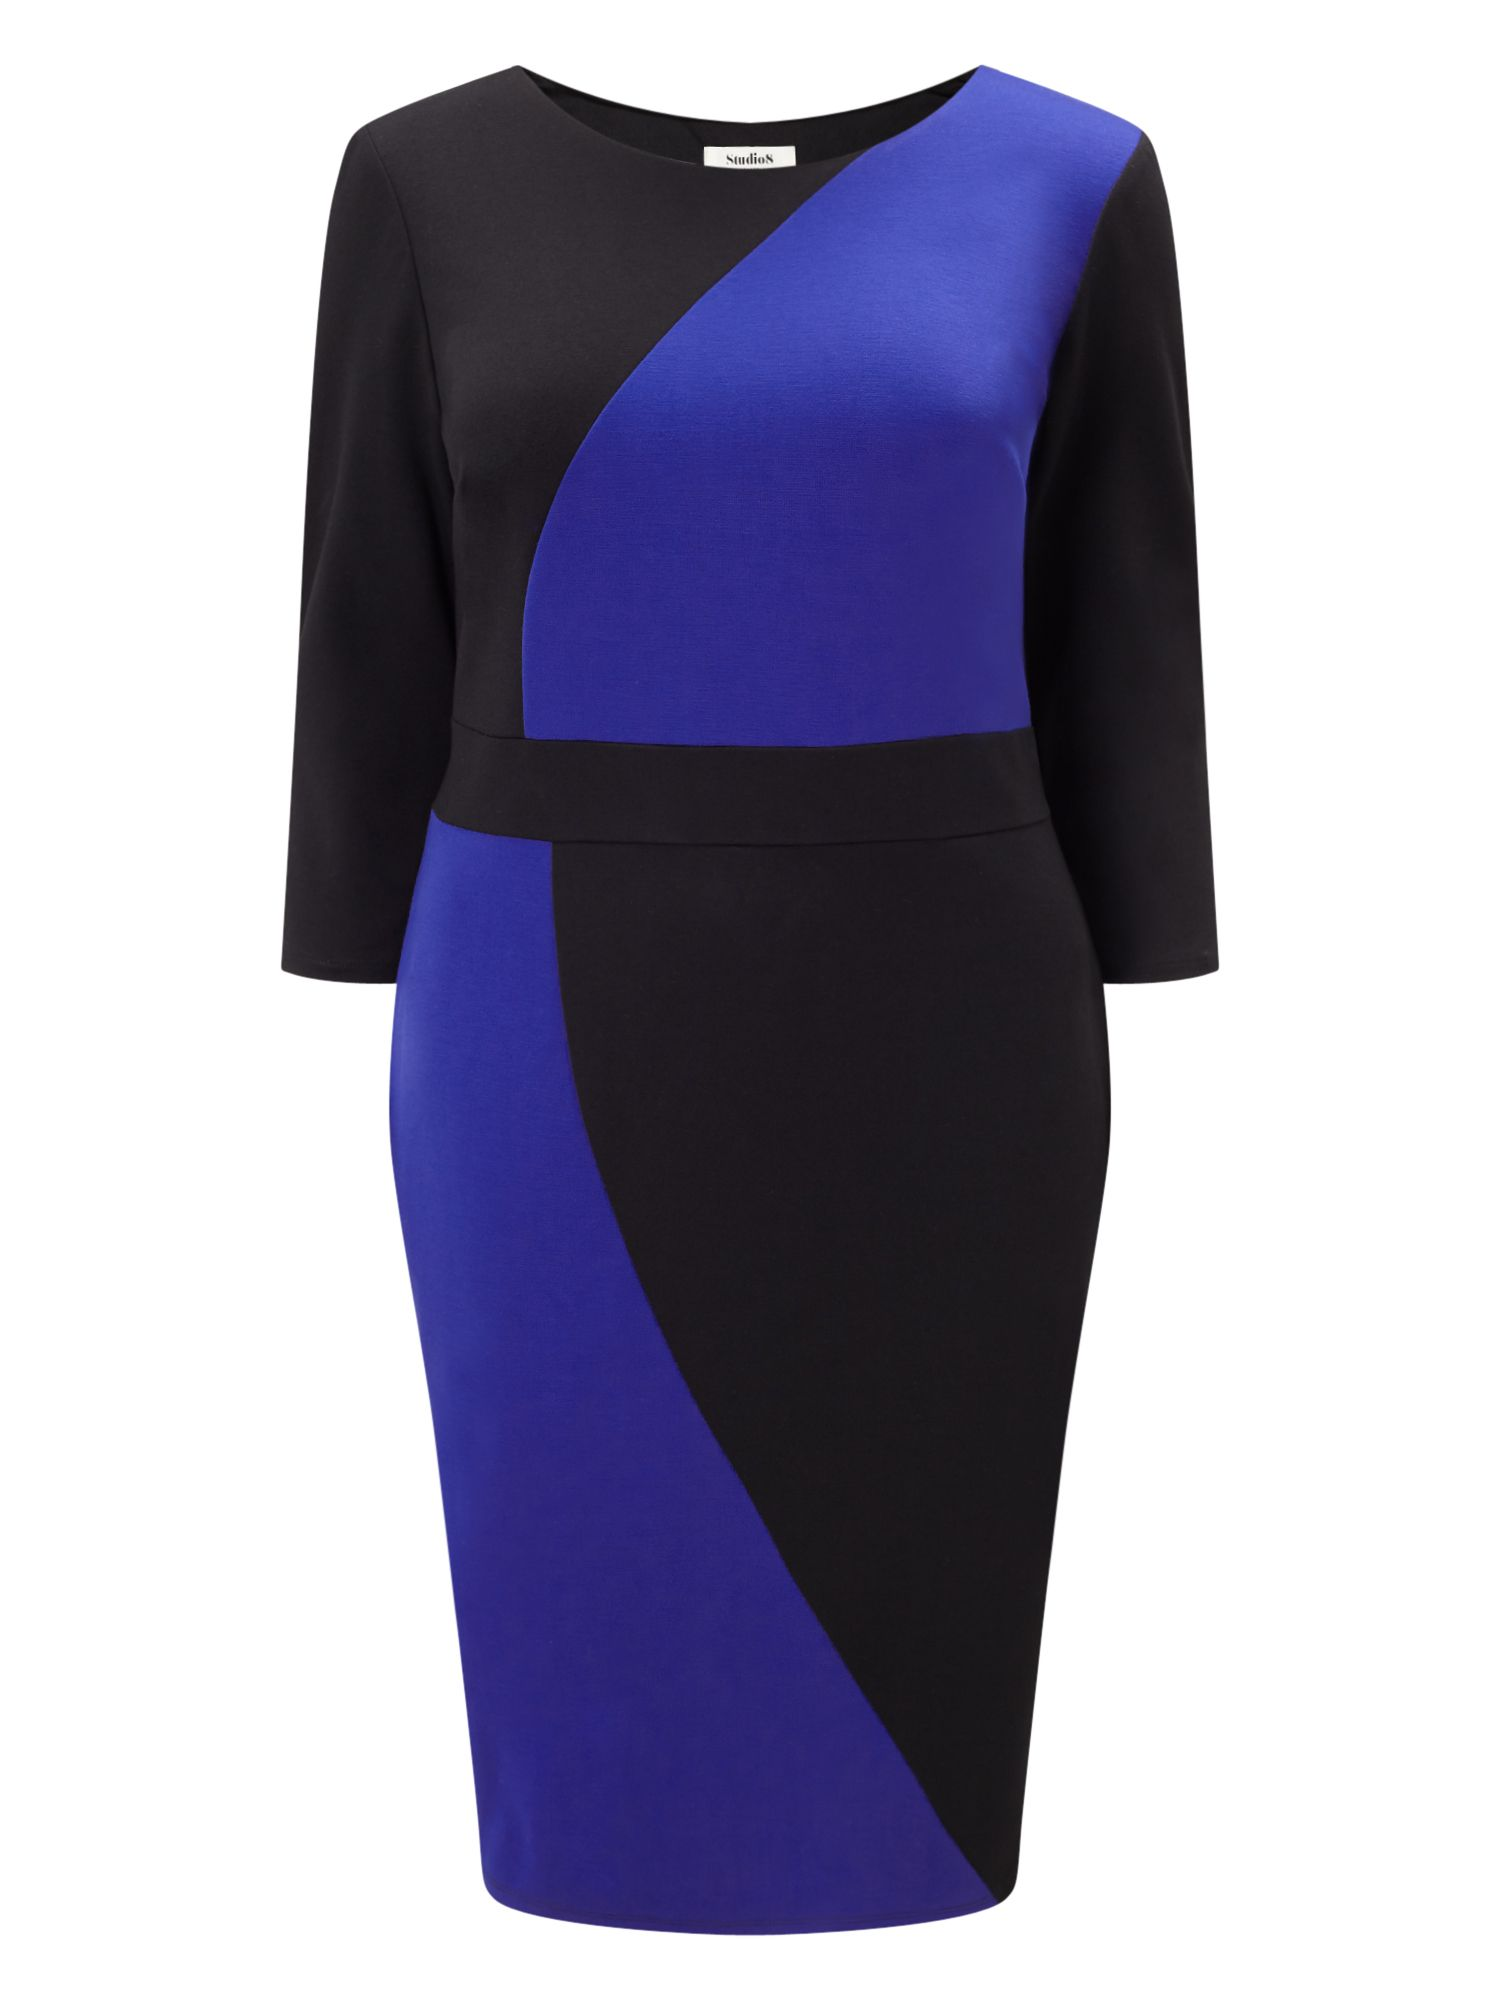 Studio 8 Caitlin Dress, Cobalt